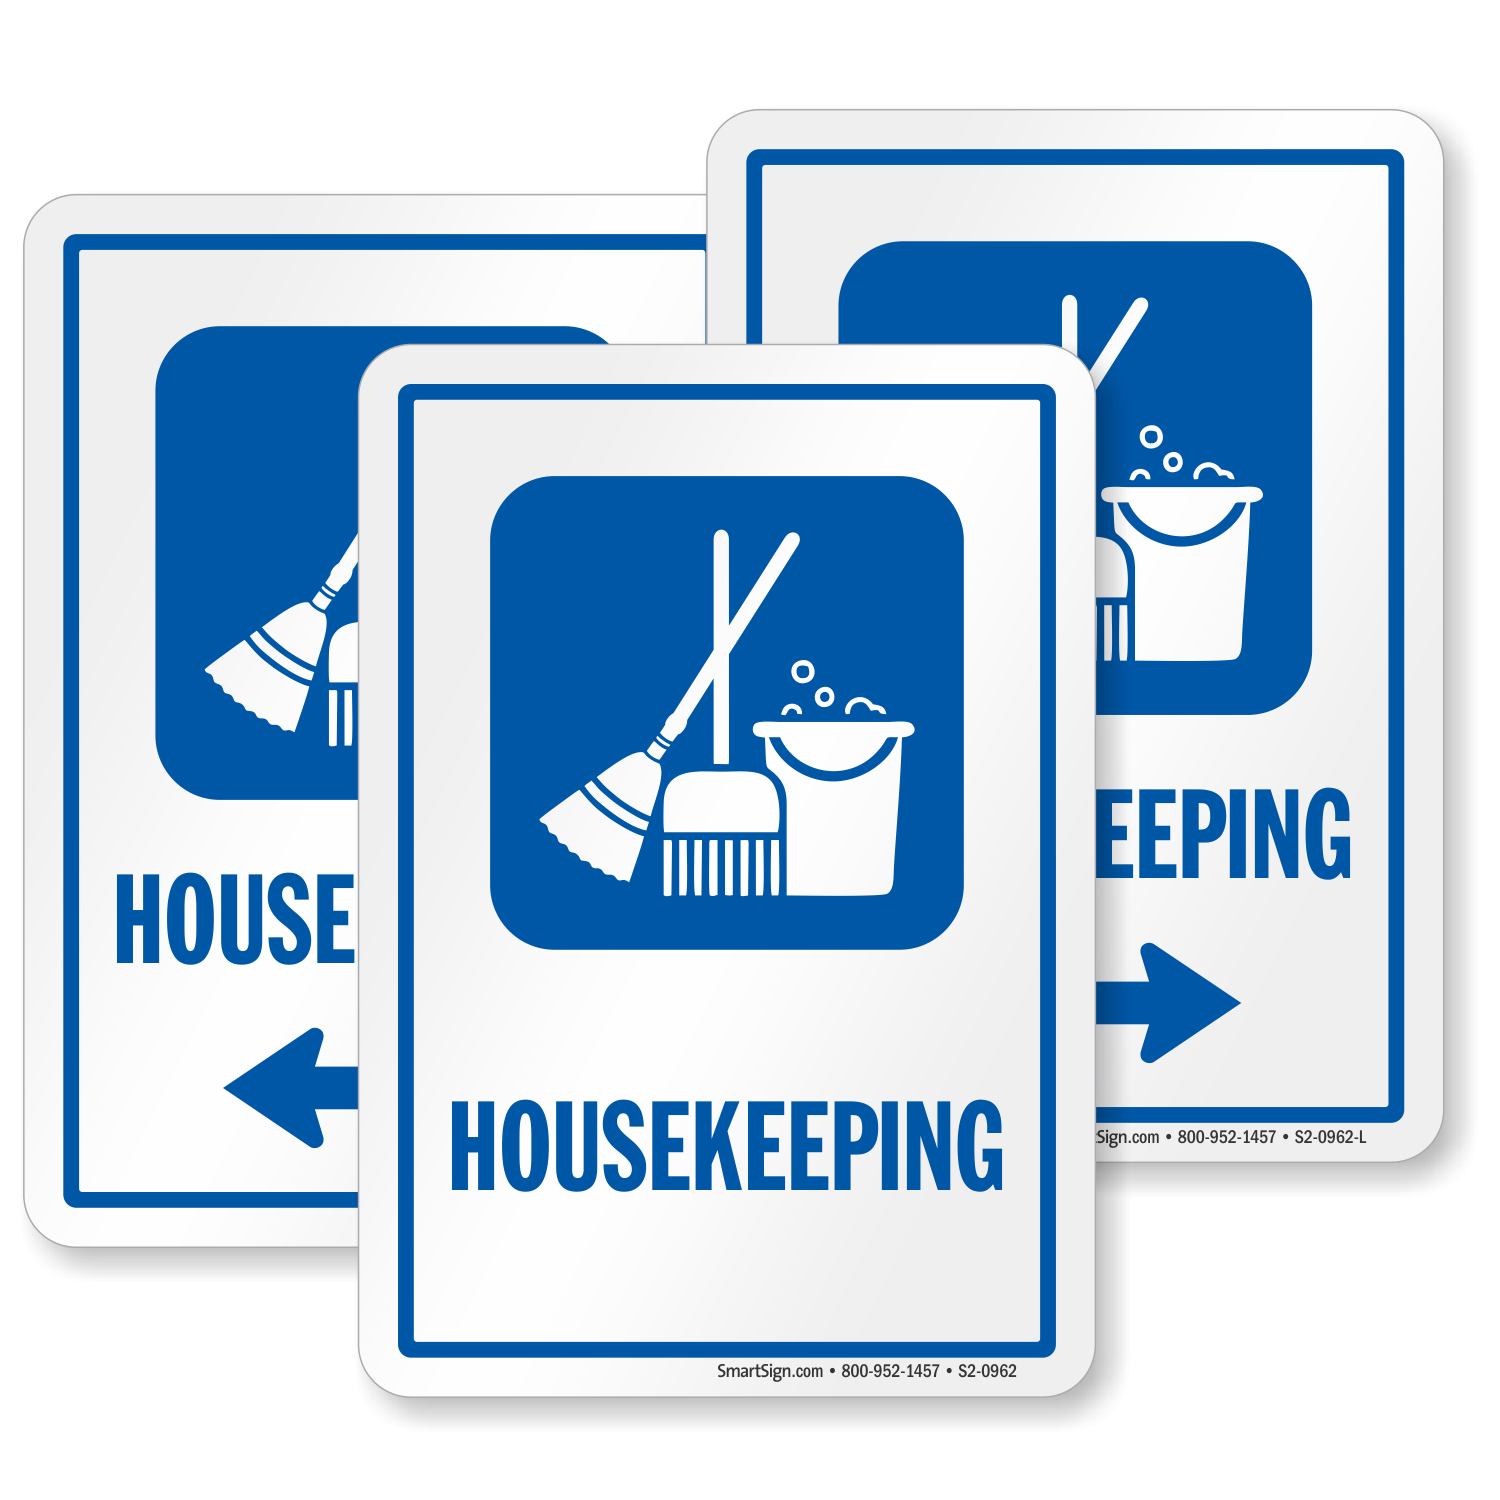 Housekeeping Signs | Housekeeping Door Signs